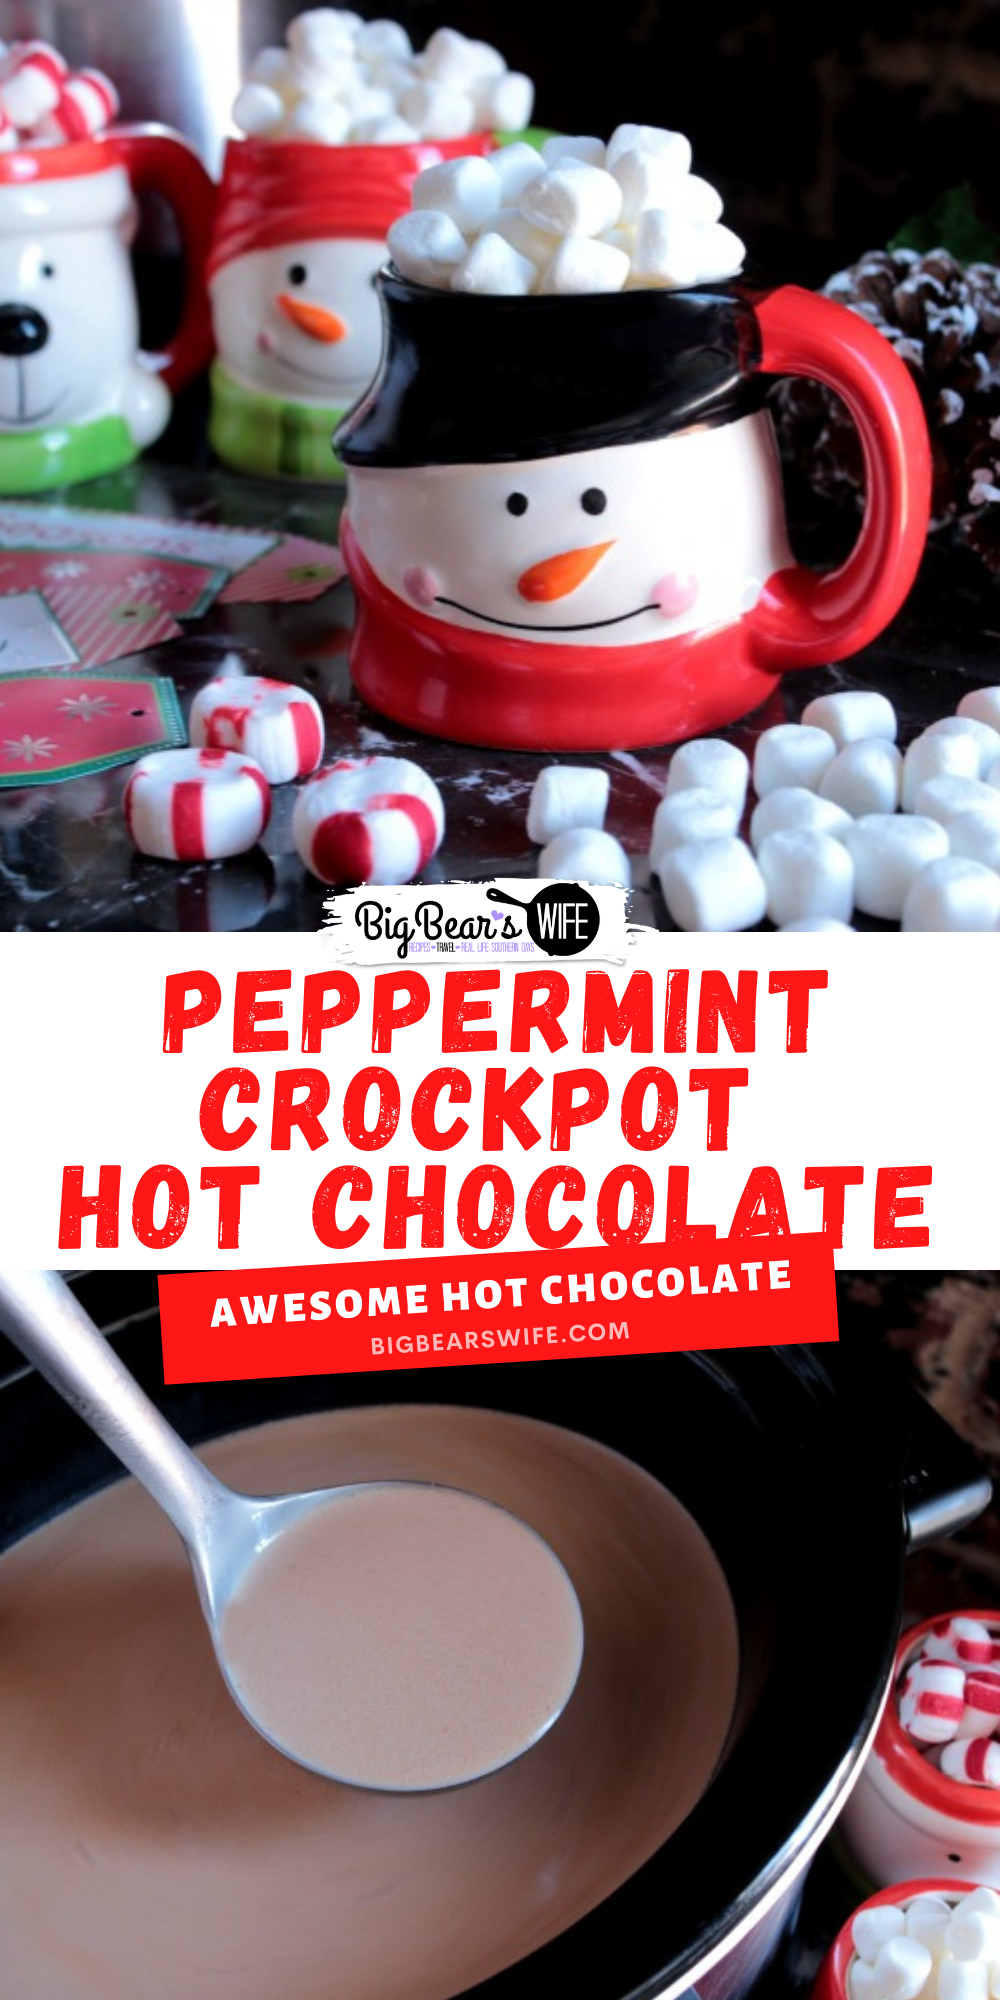 This Peppermint Crockpot Hot Chocolate is great for parties and evening at home with the family! Snuggle up on the couch with a movie and enjoy warm mugs of hot coco throughout the evening!    via @bigbearswife